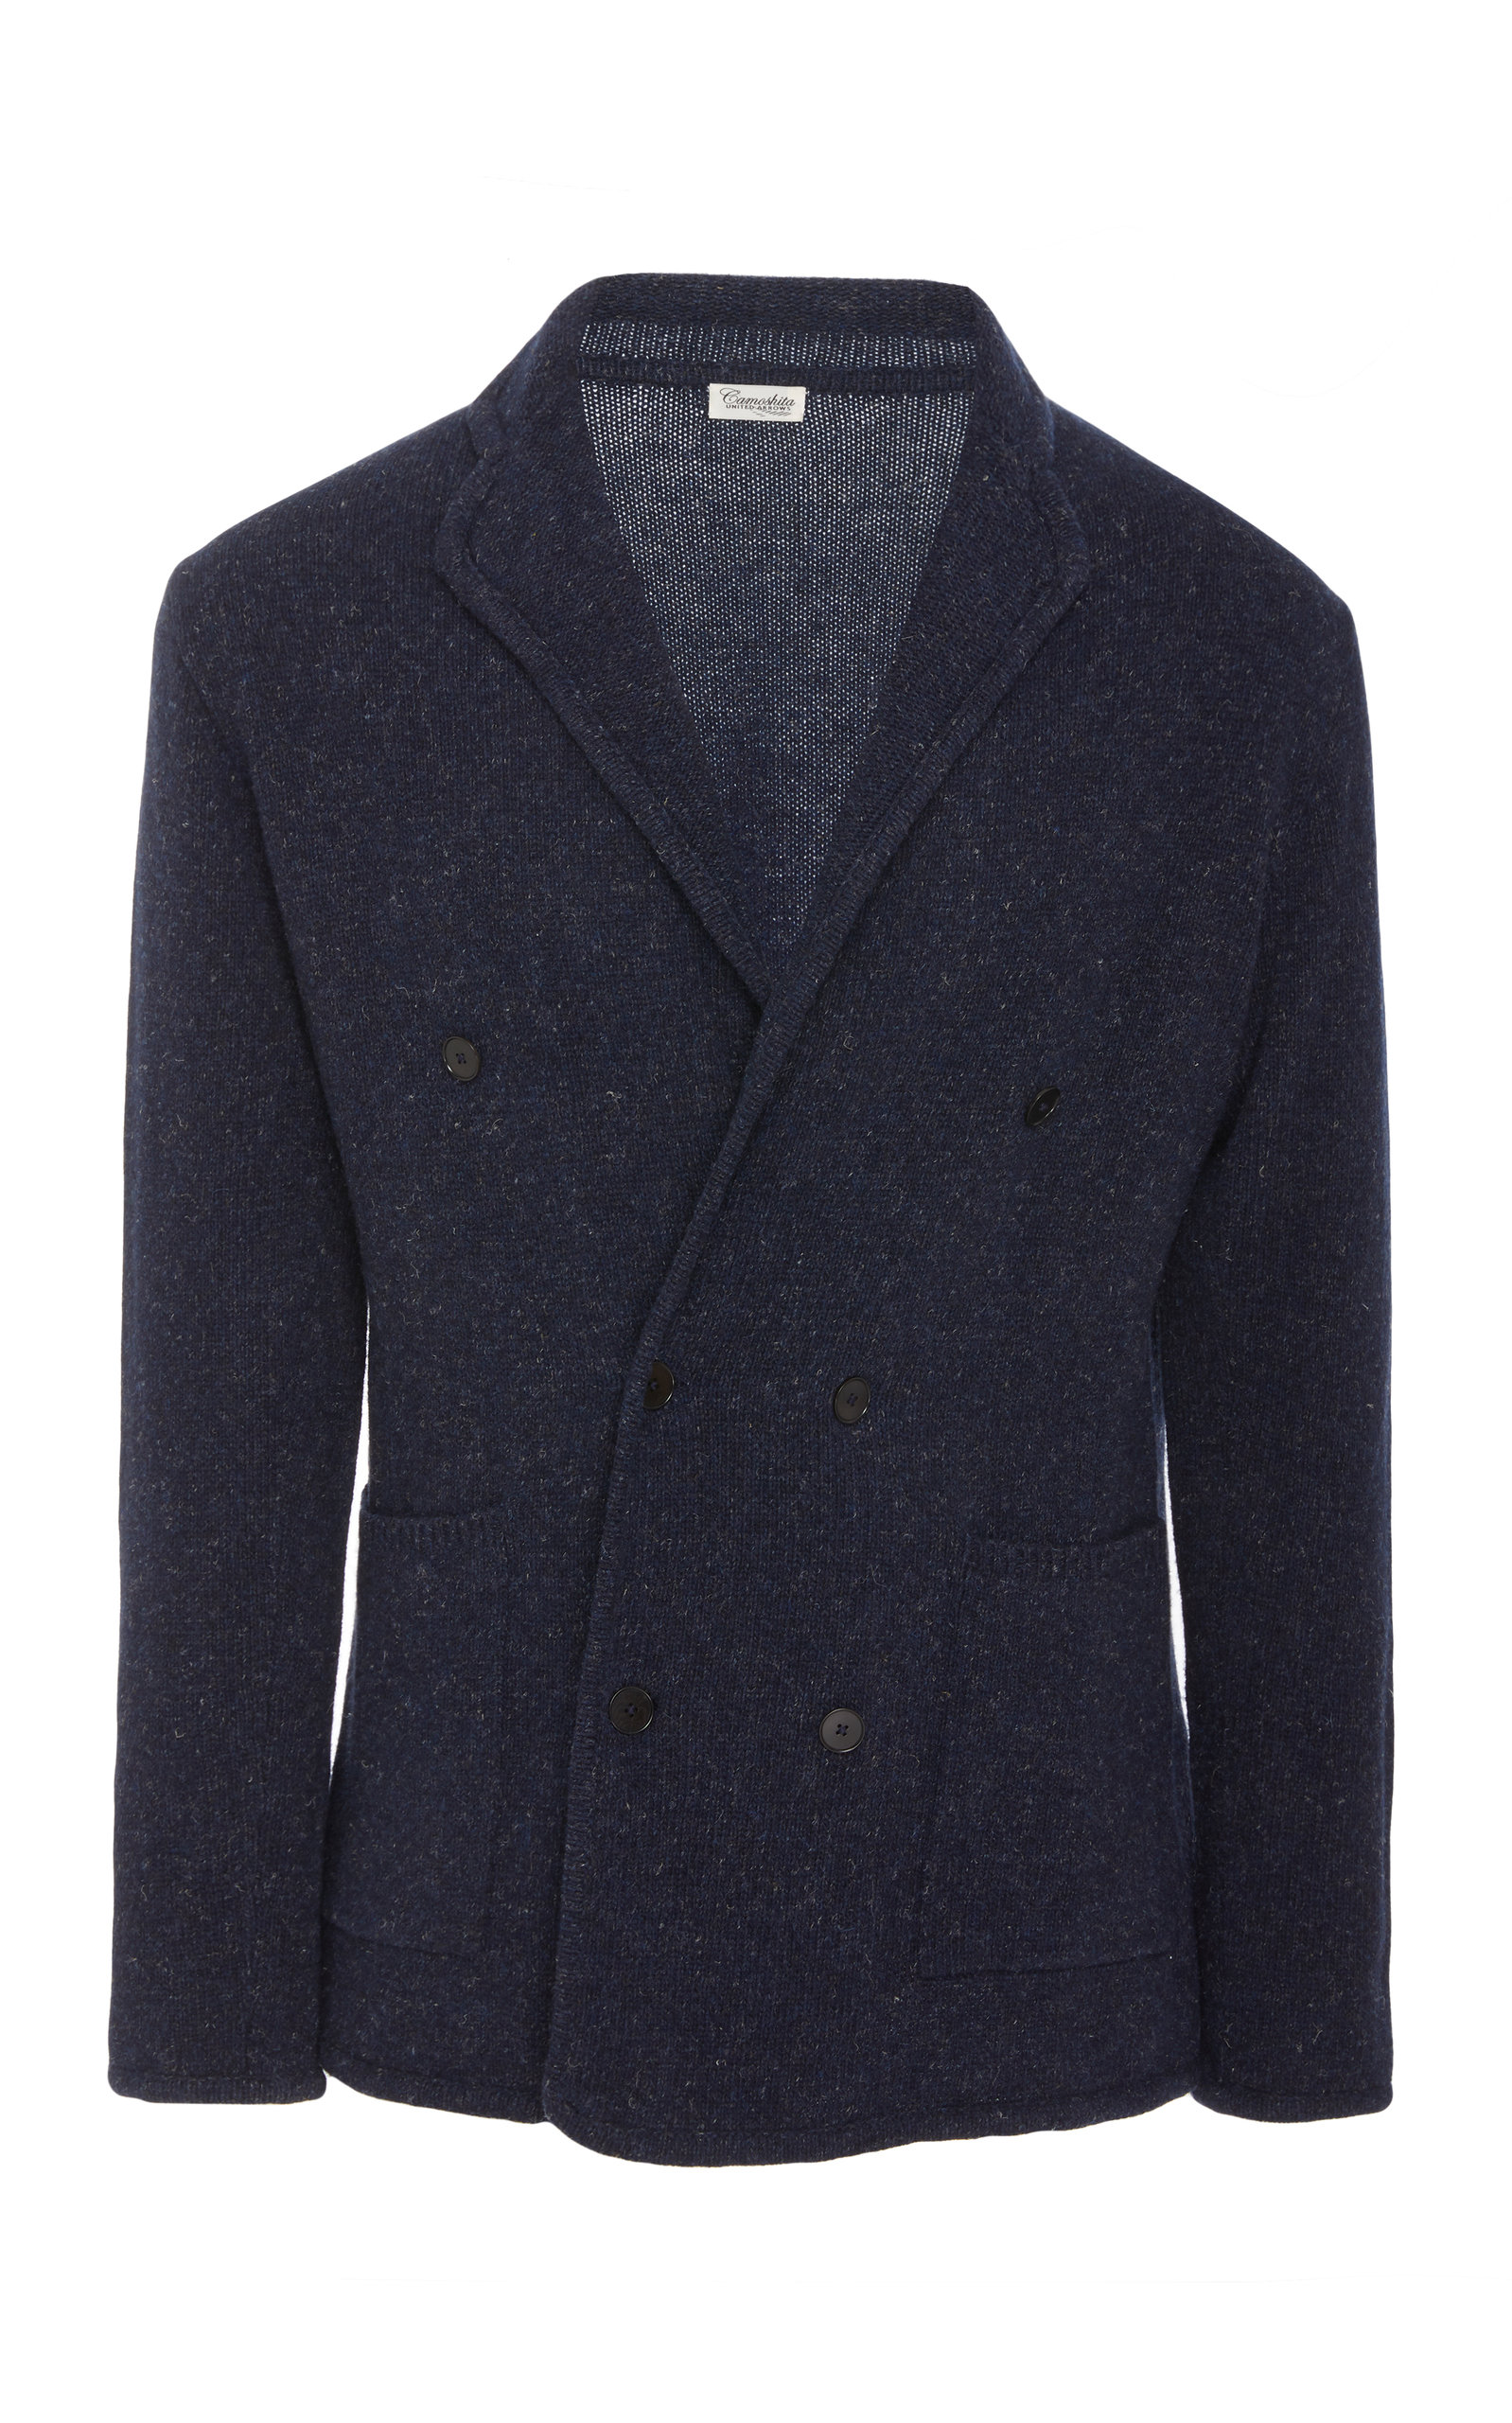 CAMOSHITA Double-Breasted Wool-Blend Bouclé Jacket in Navy